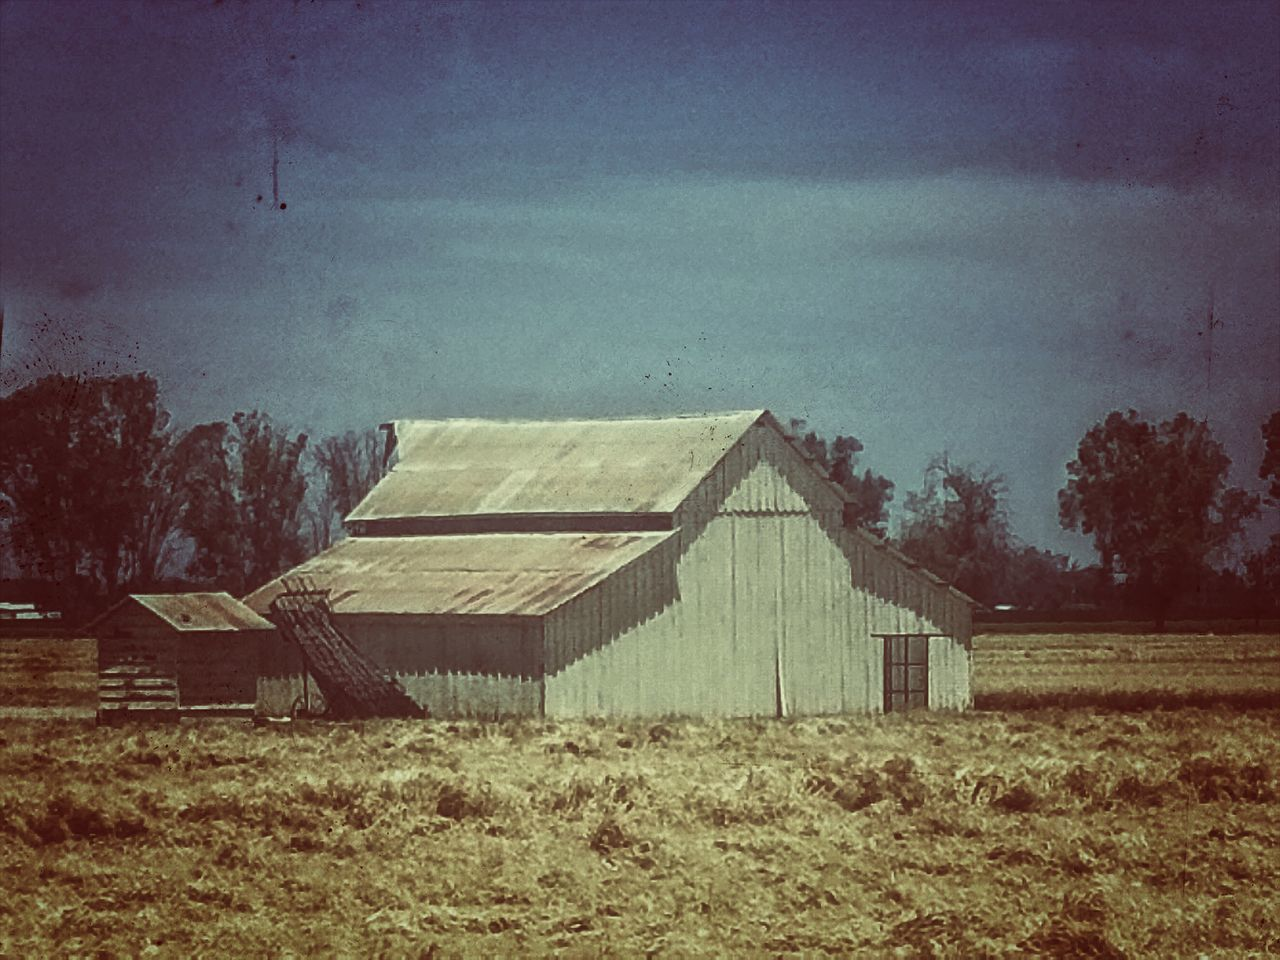 The Architect - 2016 EyeEm Awards Old Farmohouse From The Window Of A Car Condemned House Condemned Condemned Passenger Side View Stories Untold Wonderment Curiousity Smalltown Life Northern California Foothills Countryside Views Archetecture Abandonment Simple Life Lemoore California United States